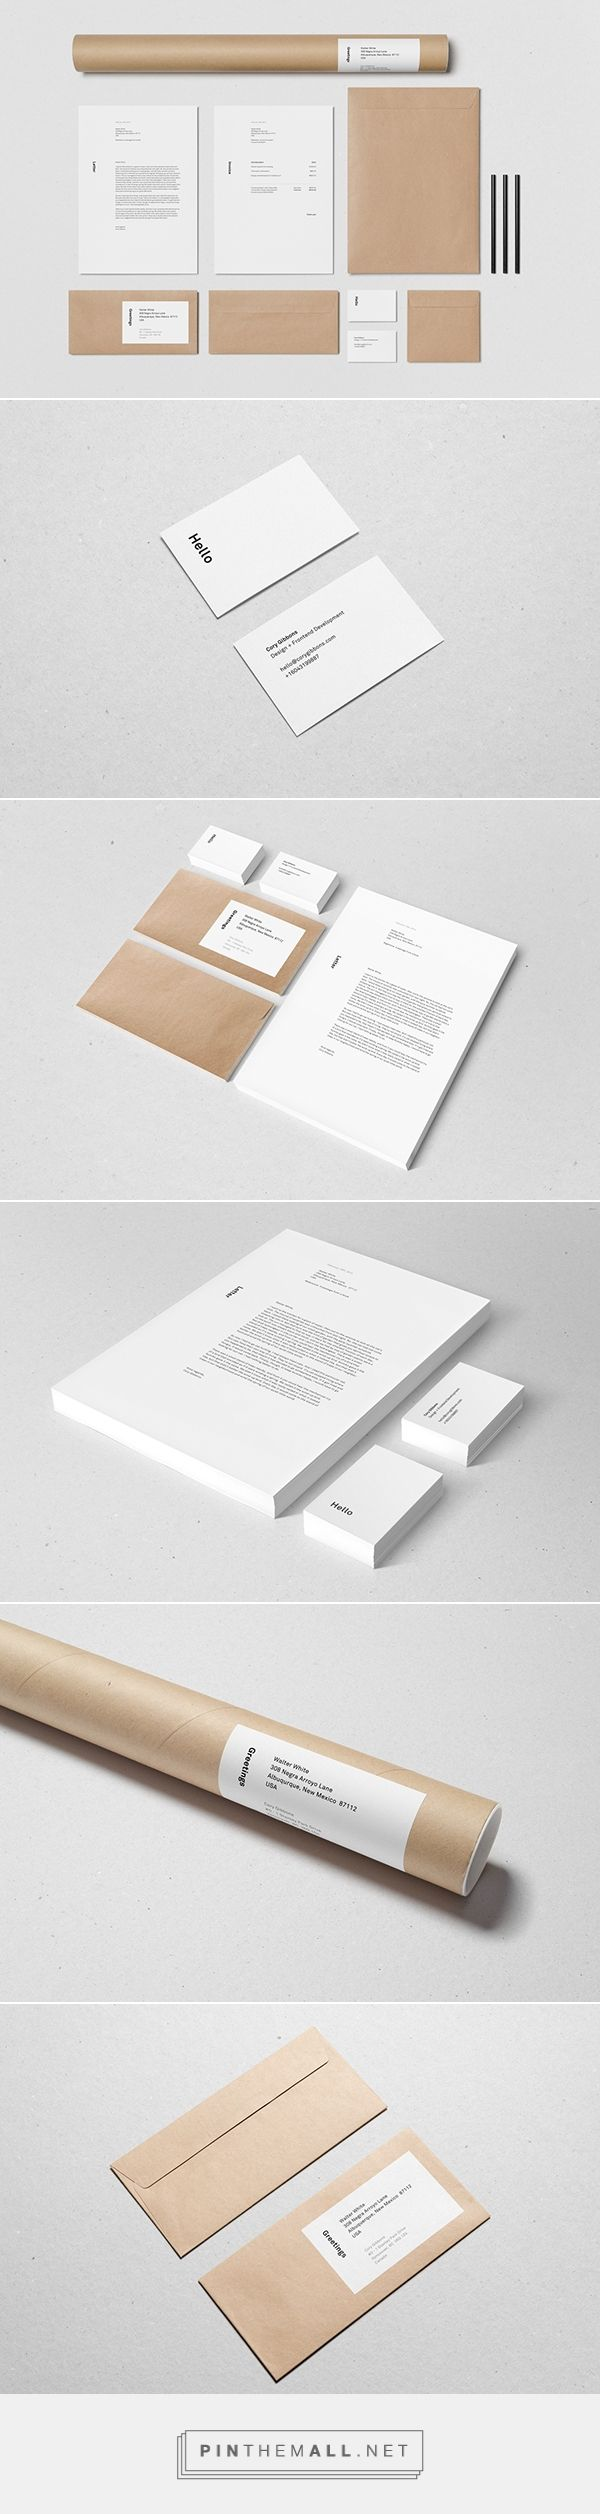 Personal Stationery On Behance  Created Via HttpsPinthemall